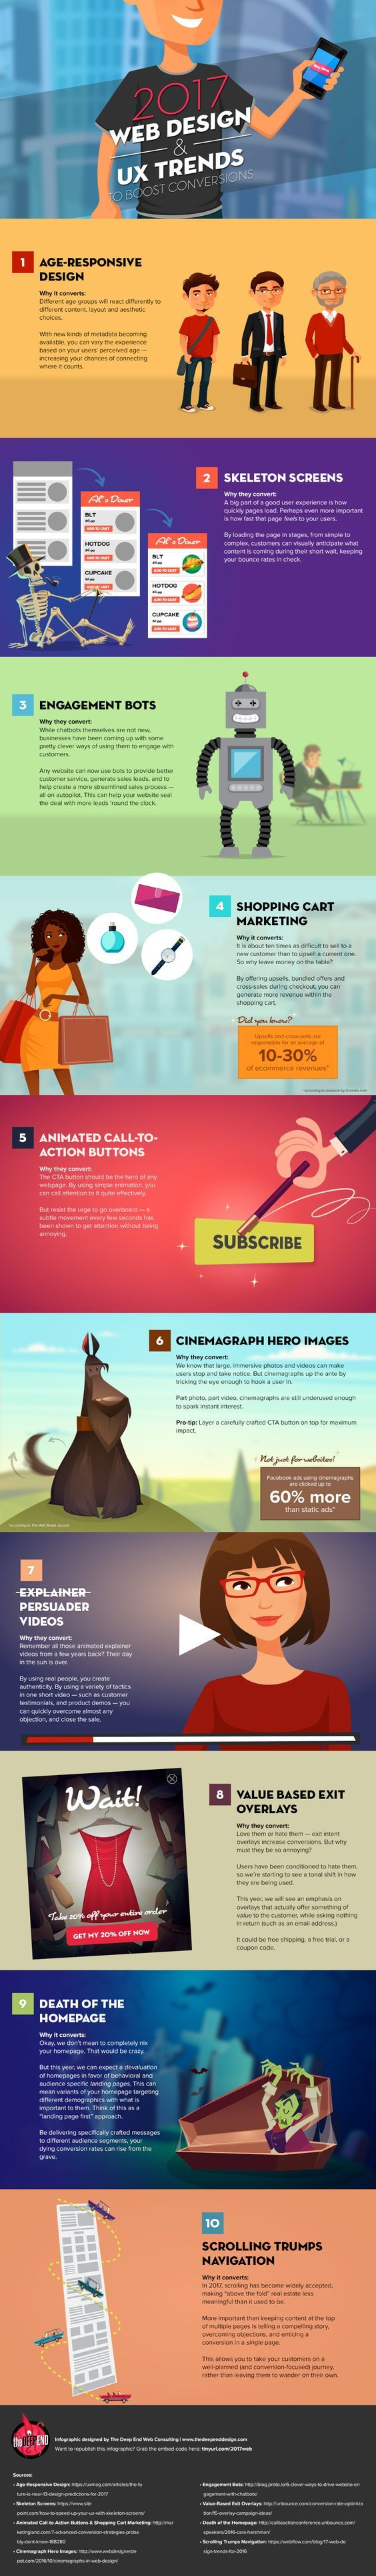 (37) 10 Web Design Trends That Will Rock 2017 #Infographic | Web design | Pinterest